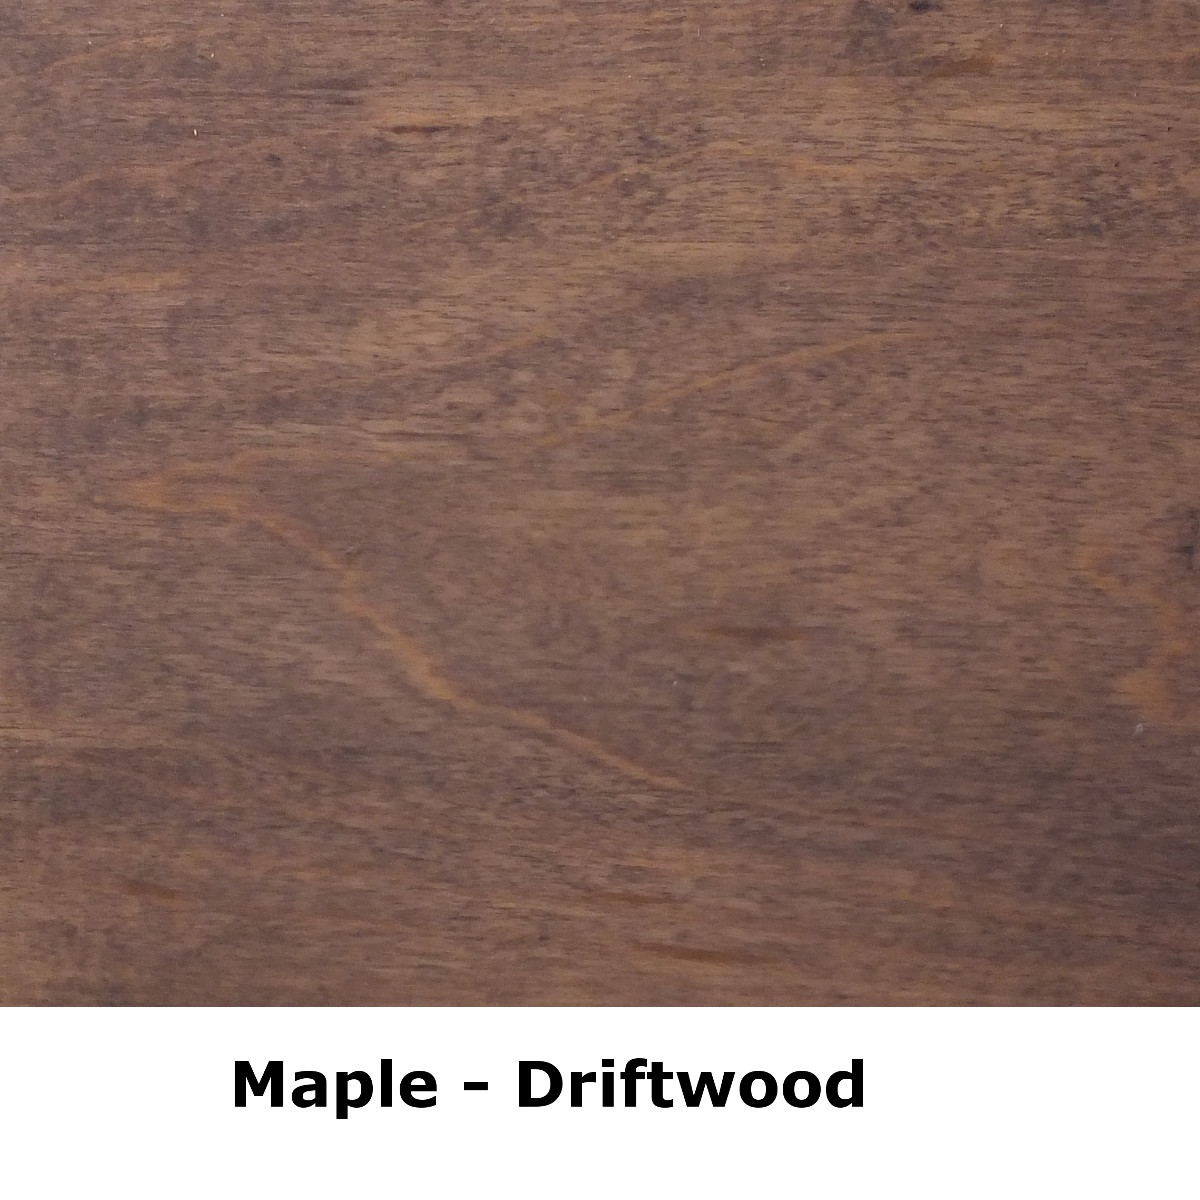 sq maple driftwood.jpeg